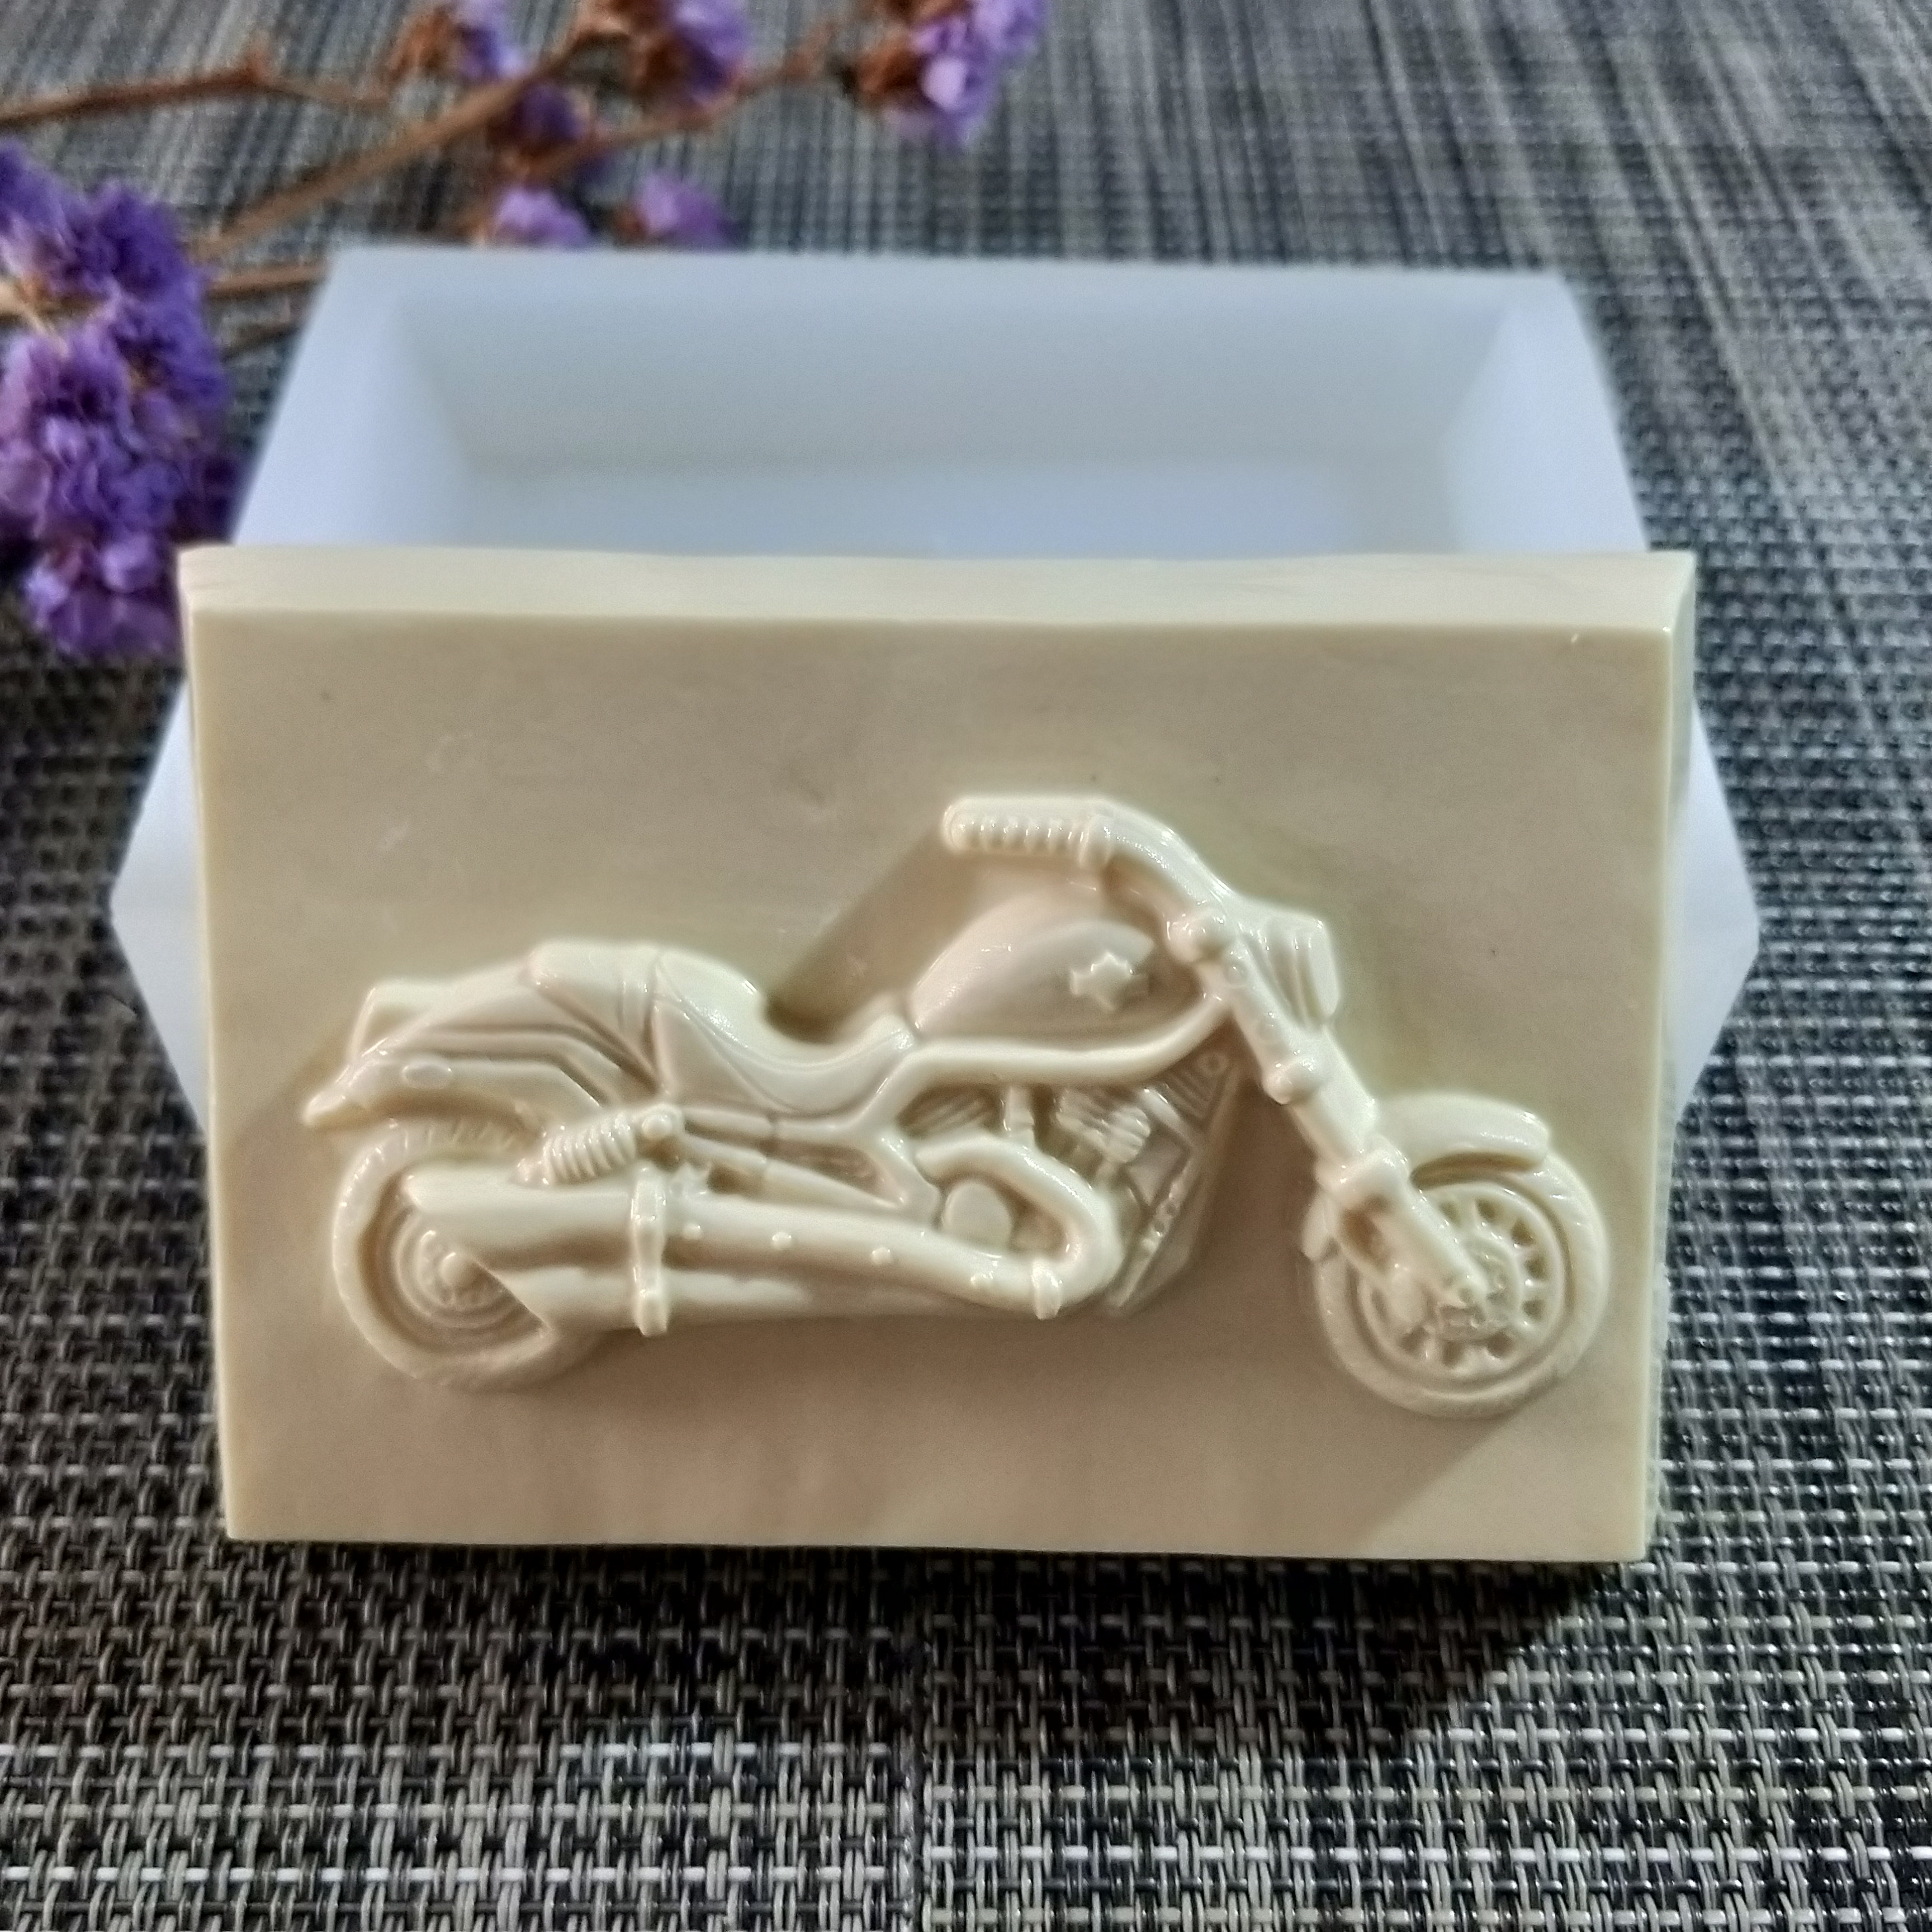 QT0159 PRZY motorcycle soap mould silicone mold handmade soap making molds candle silicone mold resin clay moulds